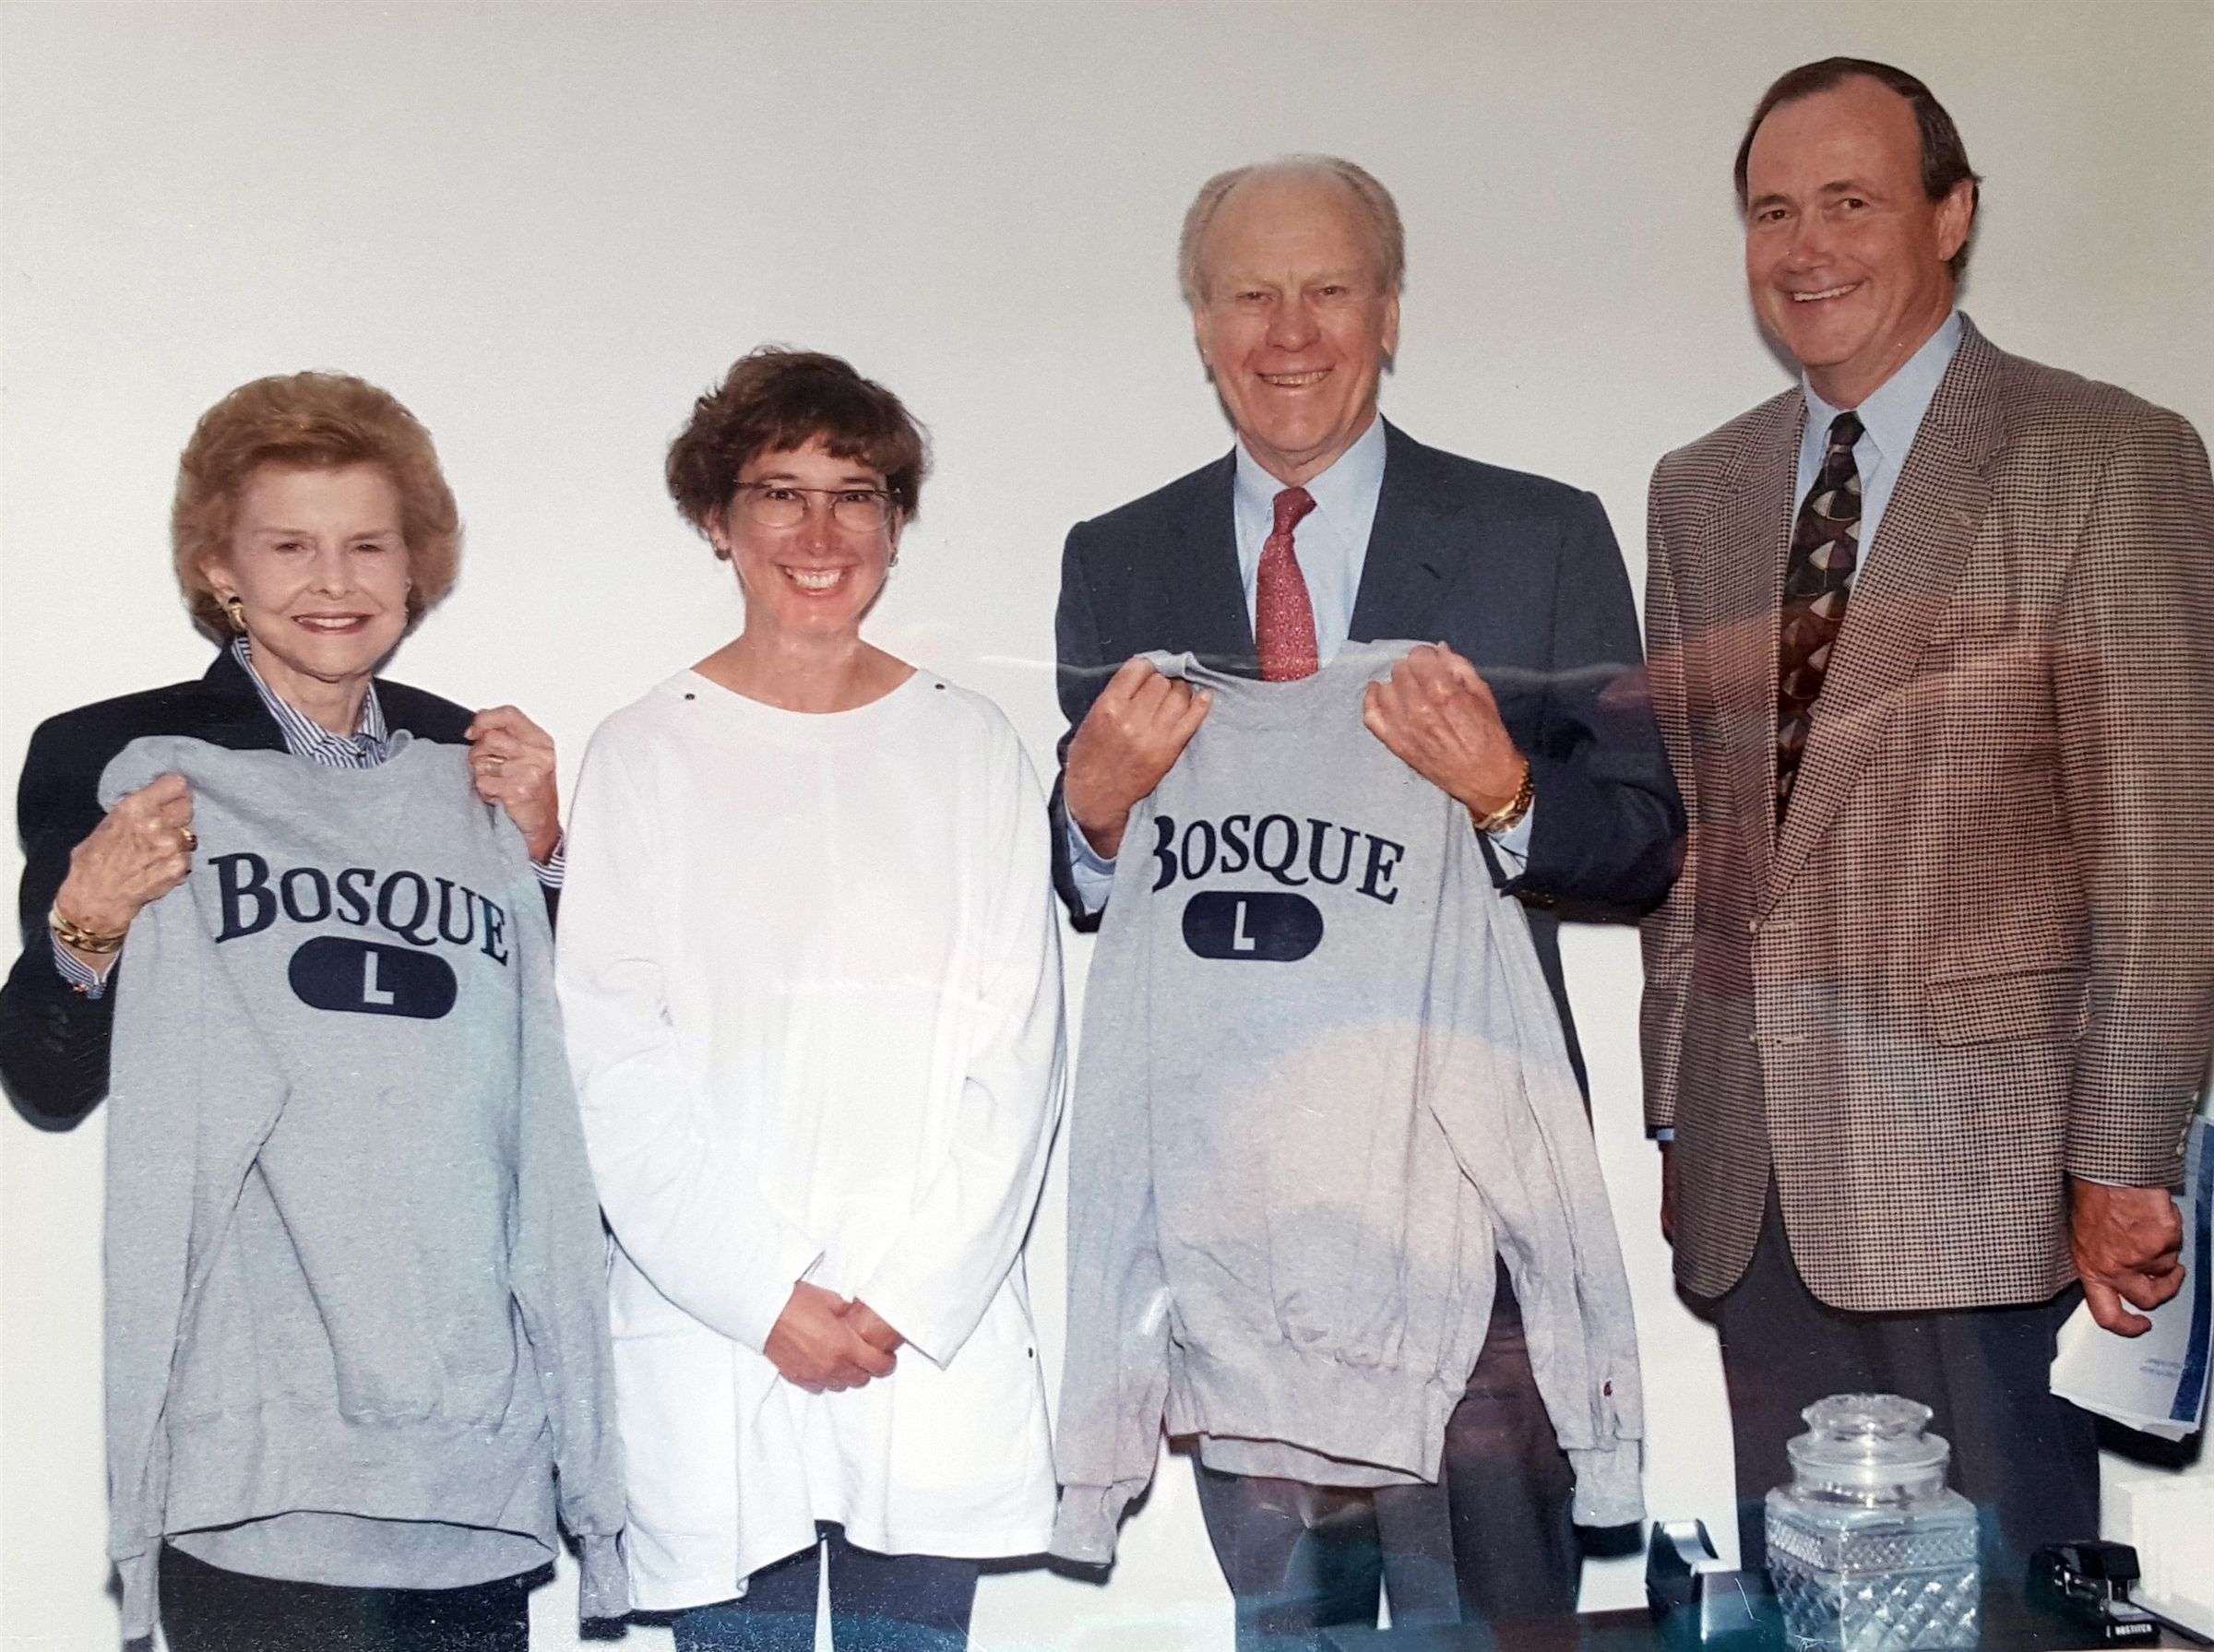 Bosque's founder Peggie Ann Findlay and 1st Head of School Dr. Gary Gruber giving President Gerald Ford and Betty Ford the first Bosque sweatshirts